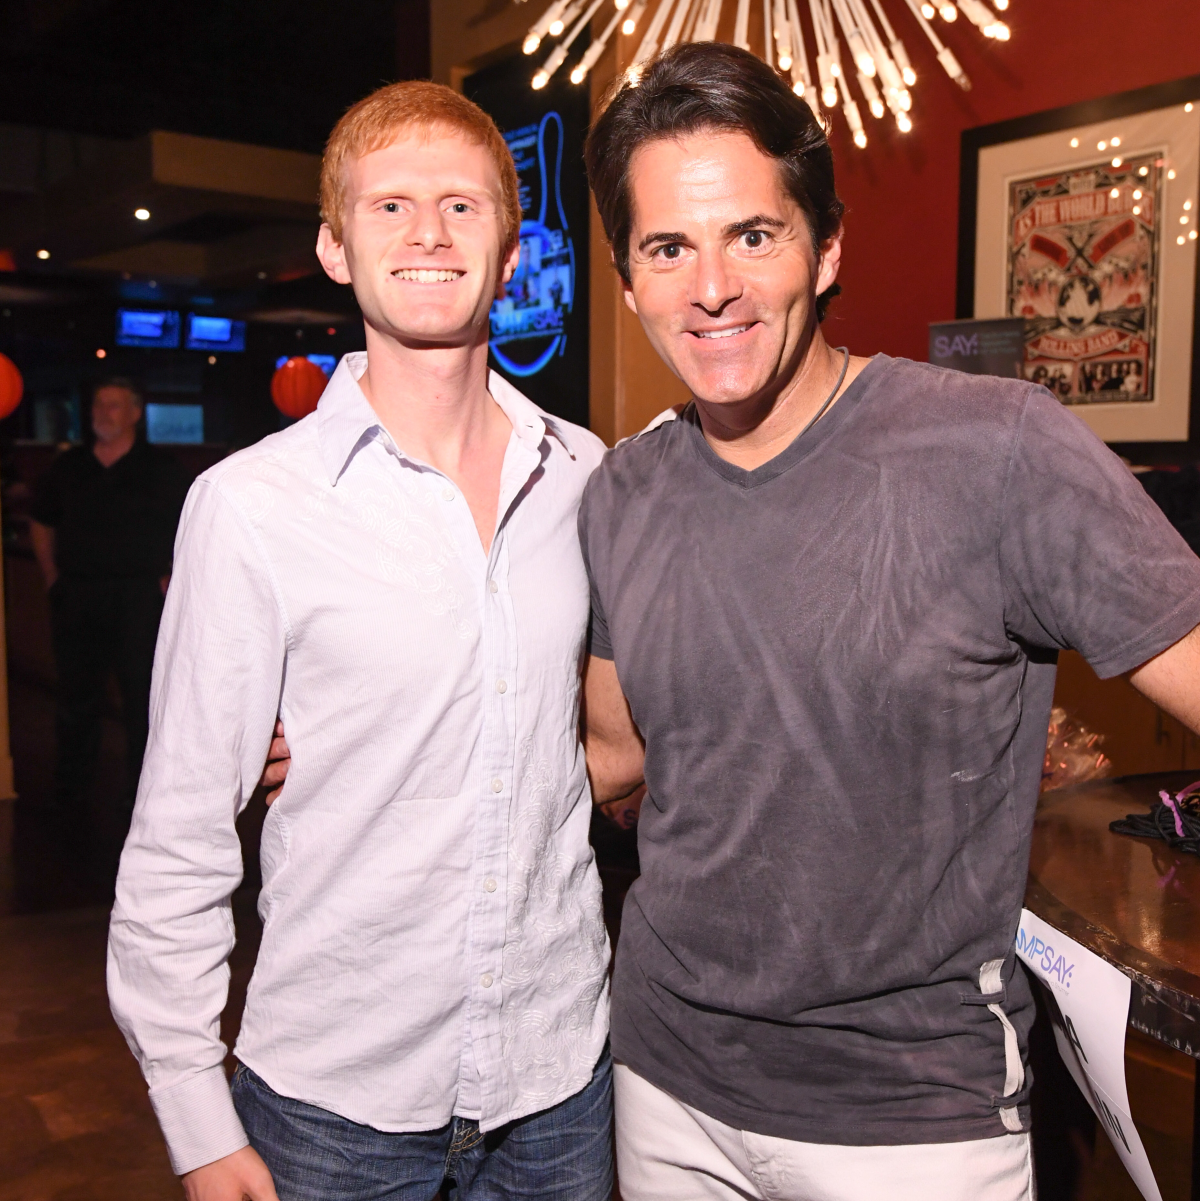 Houston, George Spring Bowling Event, June 2016, Justin Garfield, Michael Garfield